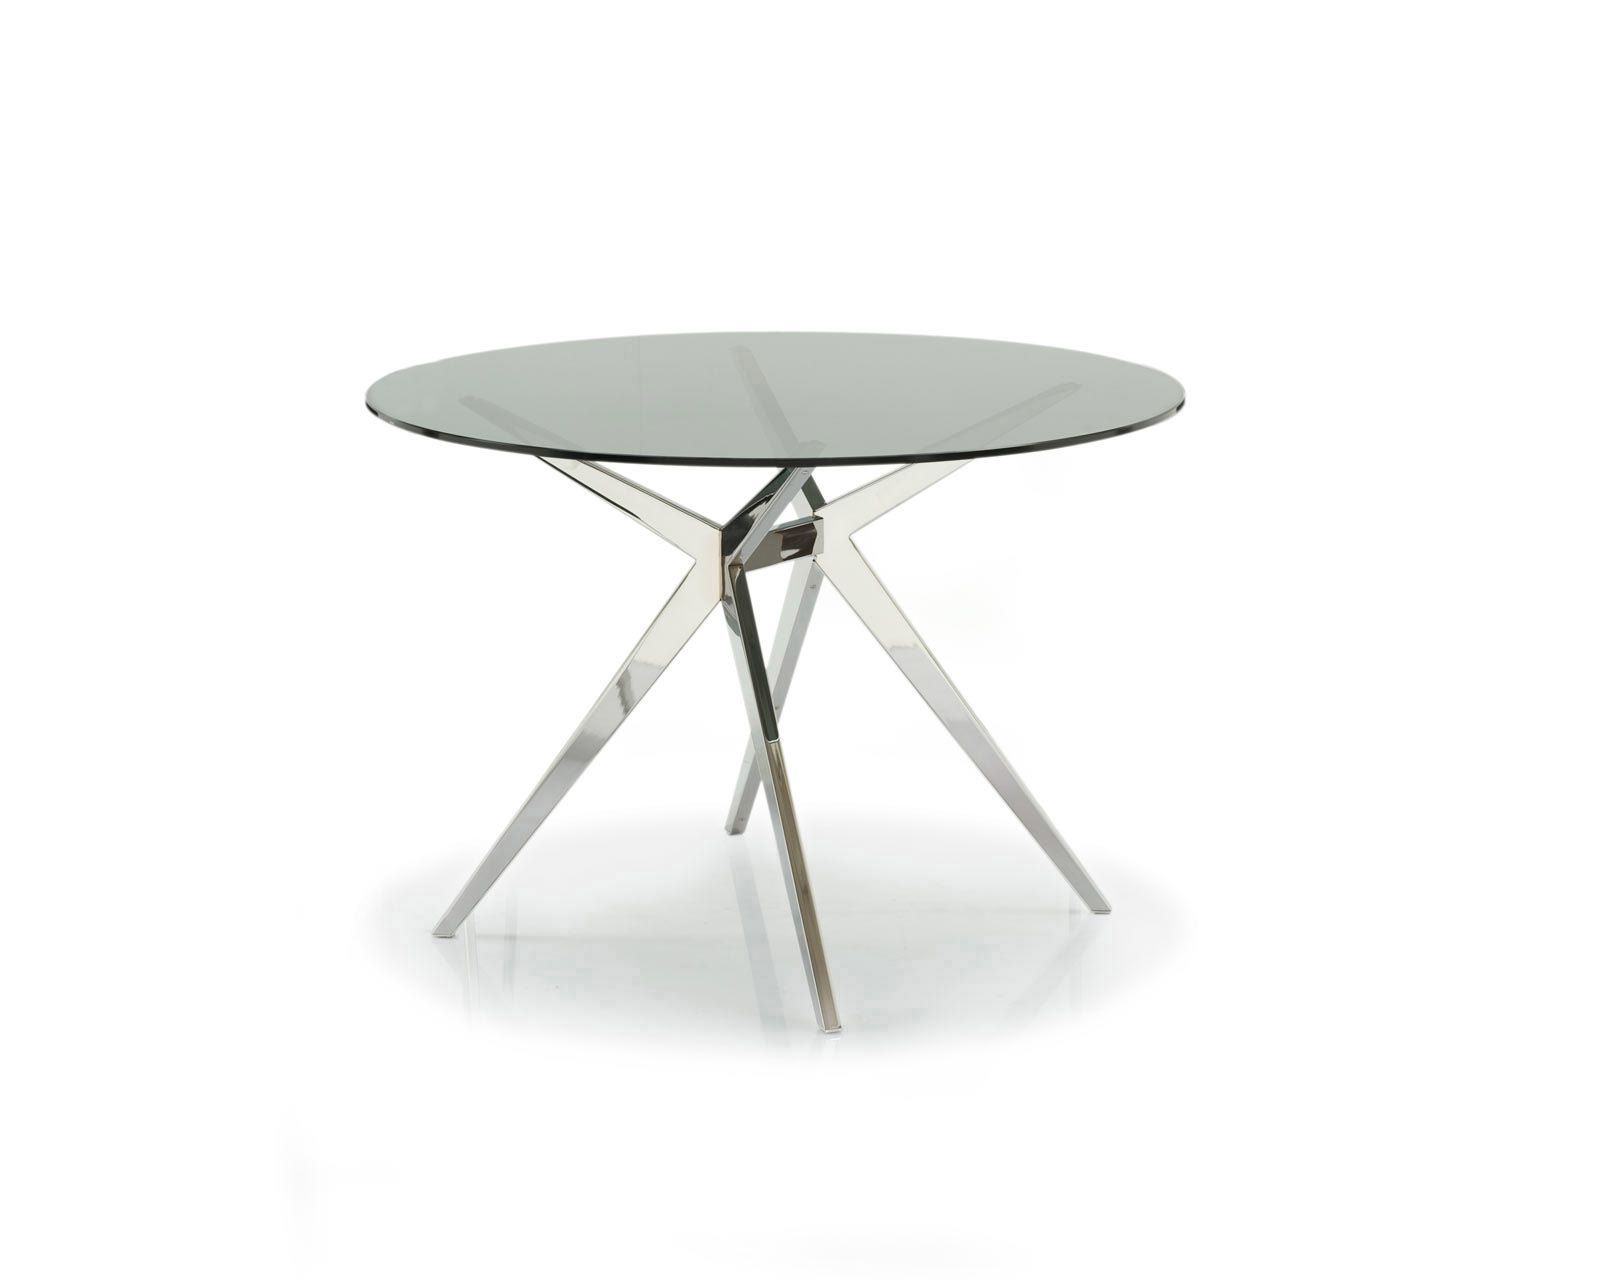 Round glass table top seating - Seven Round Glass Table Top Calligaris Cs 4042 Rd 110 G